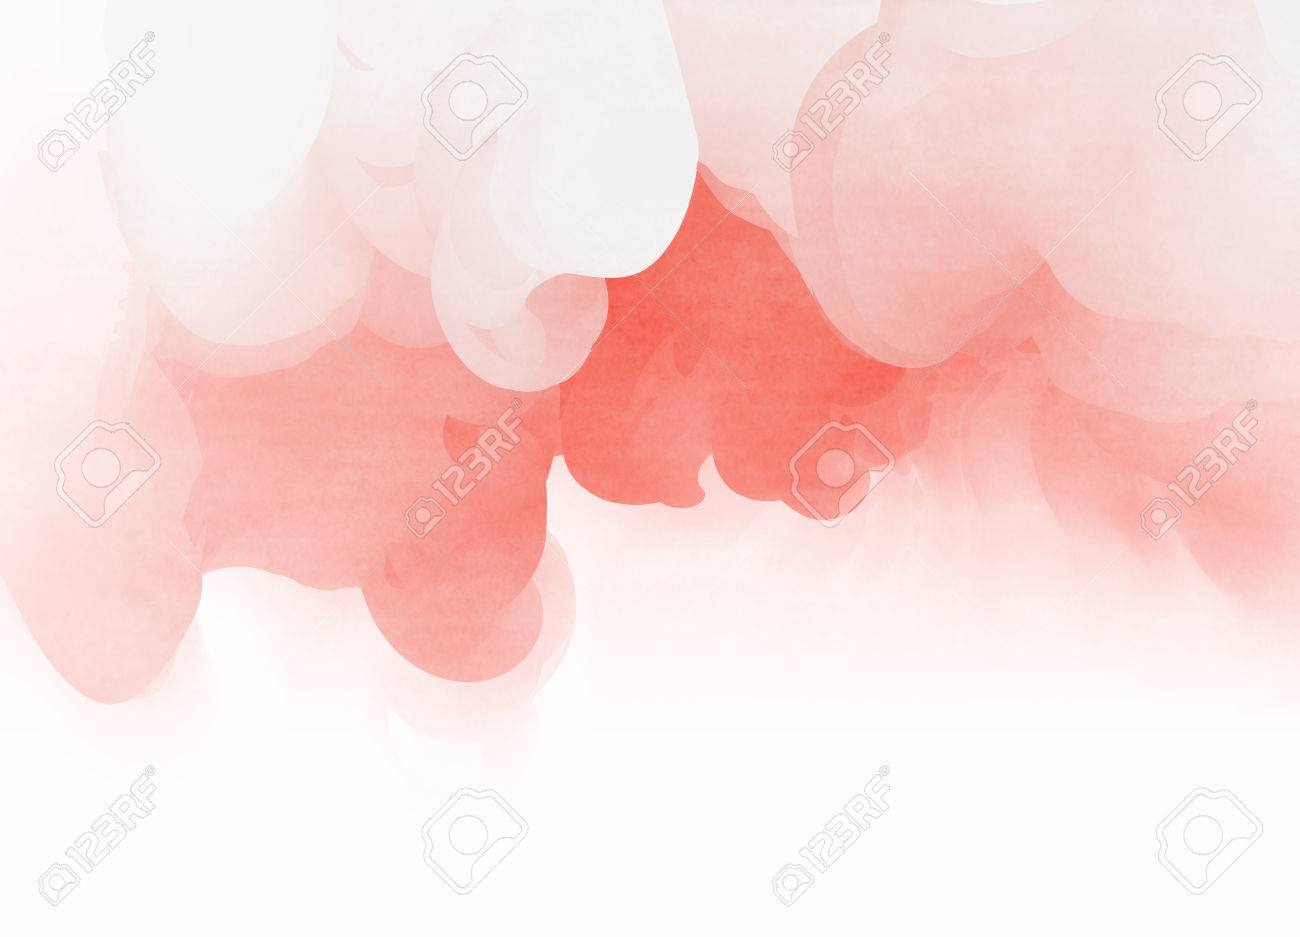 Abstract colorful watercolor for background. Digital art painting. - 63447829